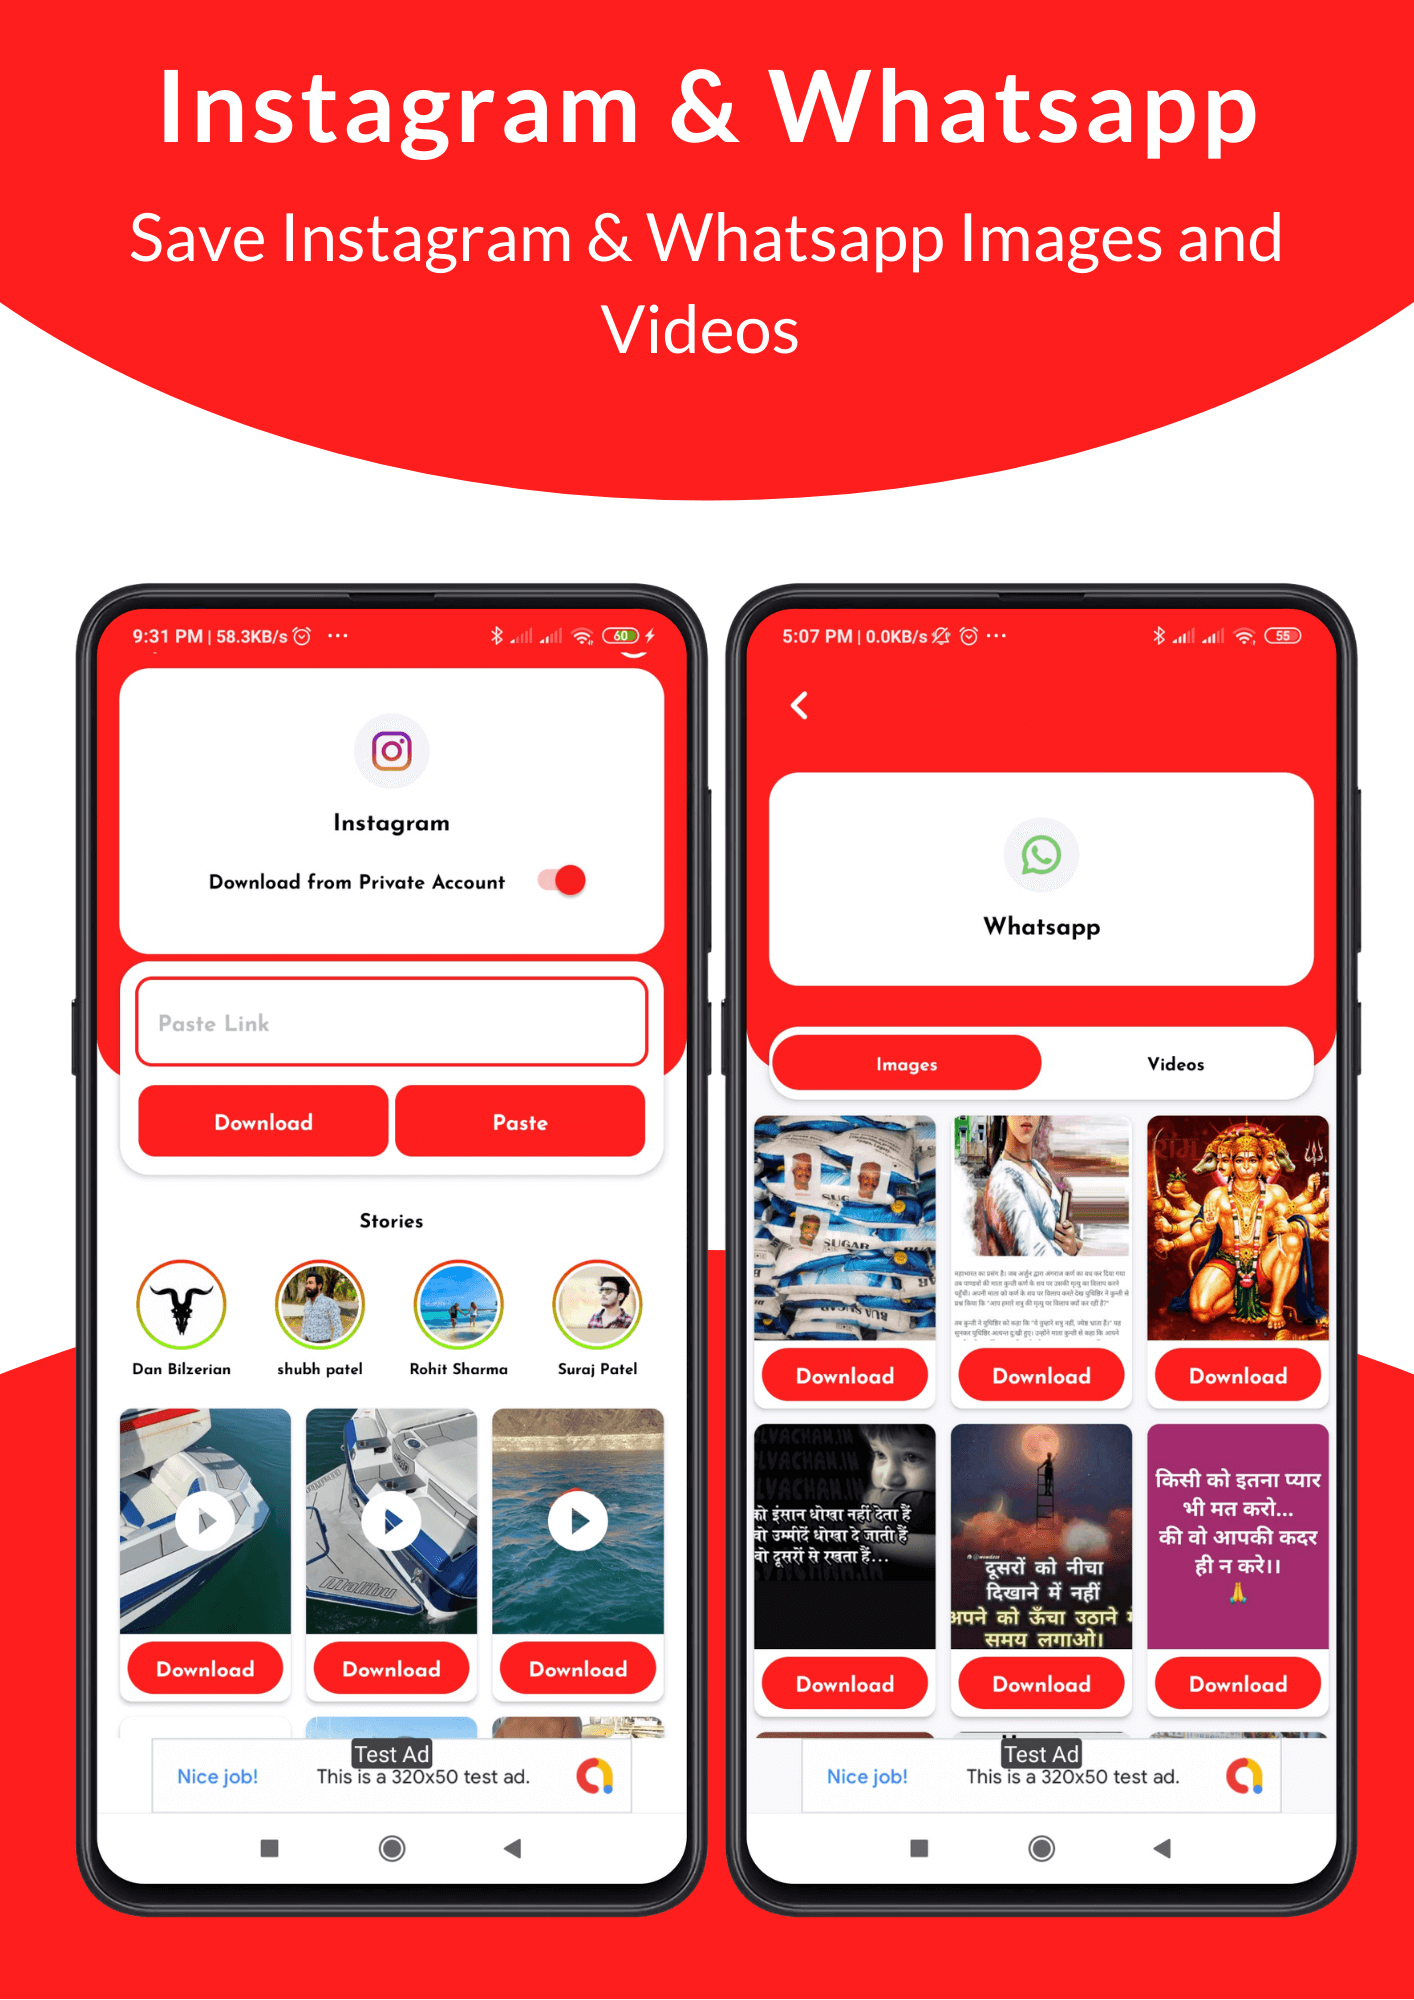 All in One Status Saver - SnackVideo, ShareChat, Roposo, Likee, Whatsapp, FB, Insta, TikTok, Twitter - 6